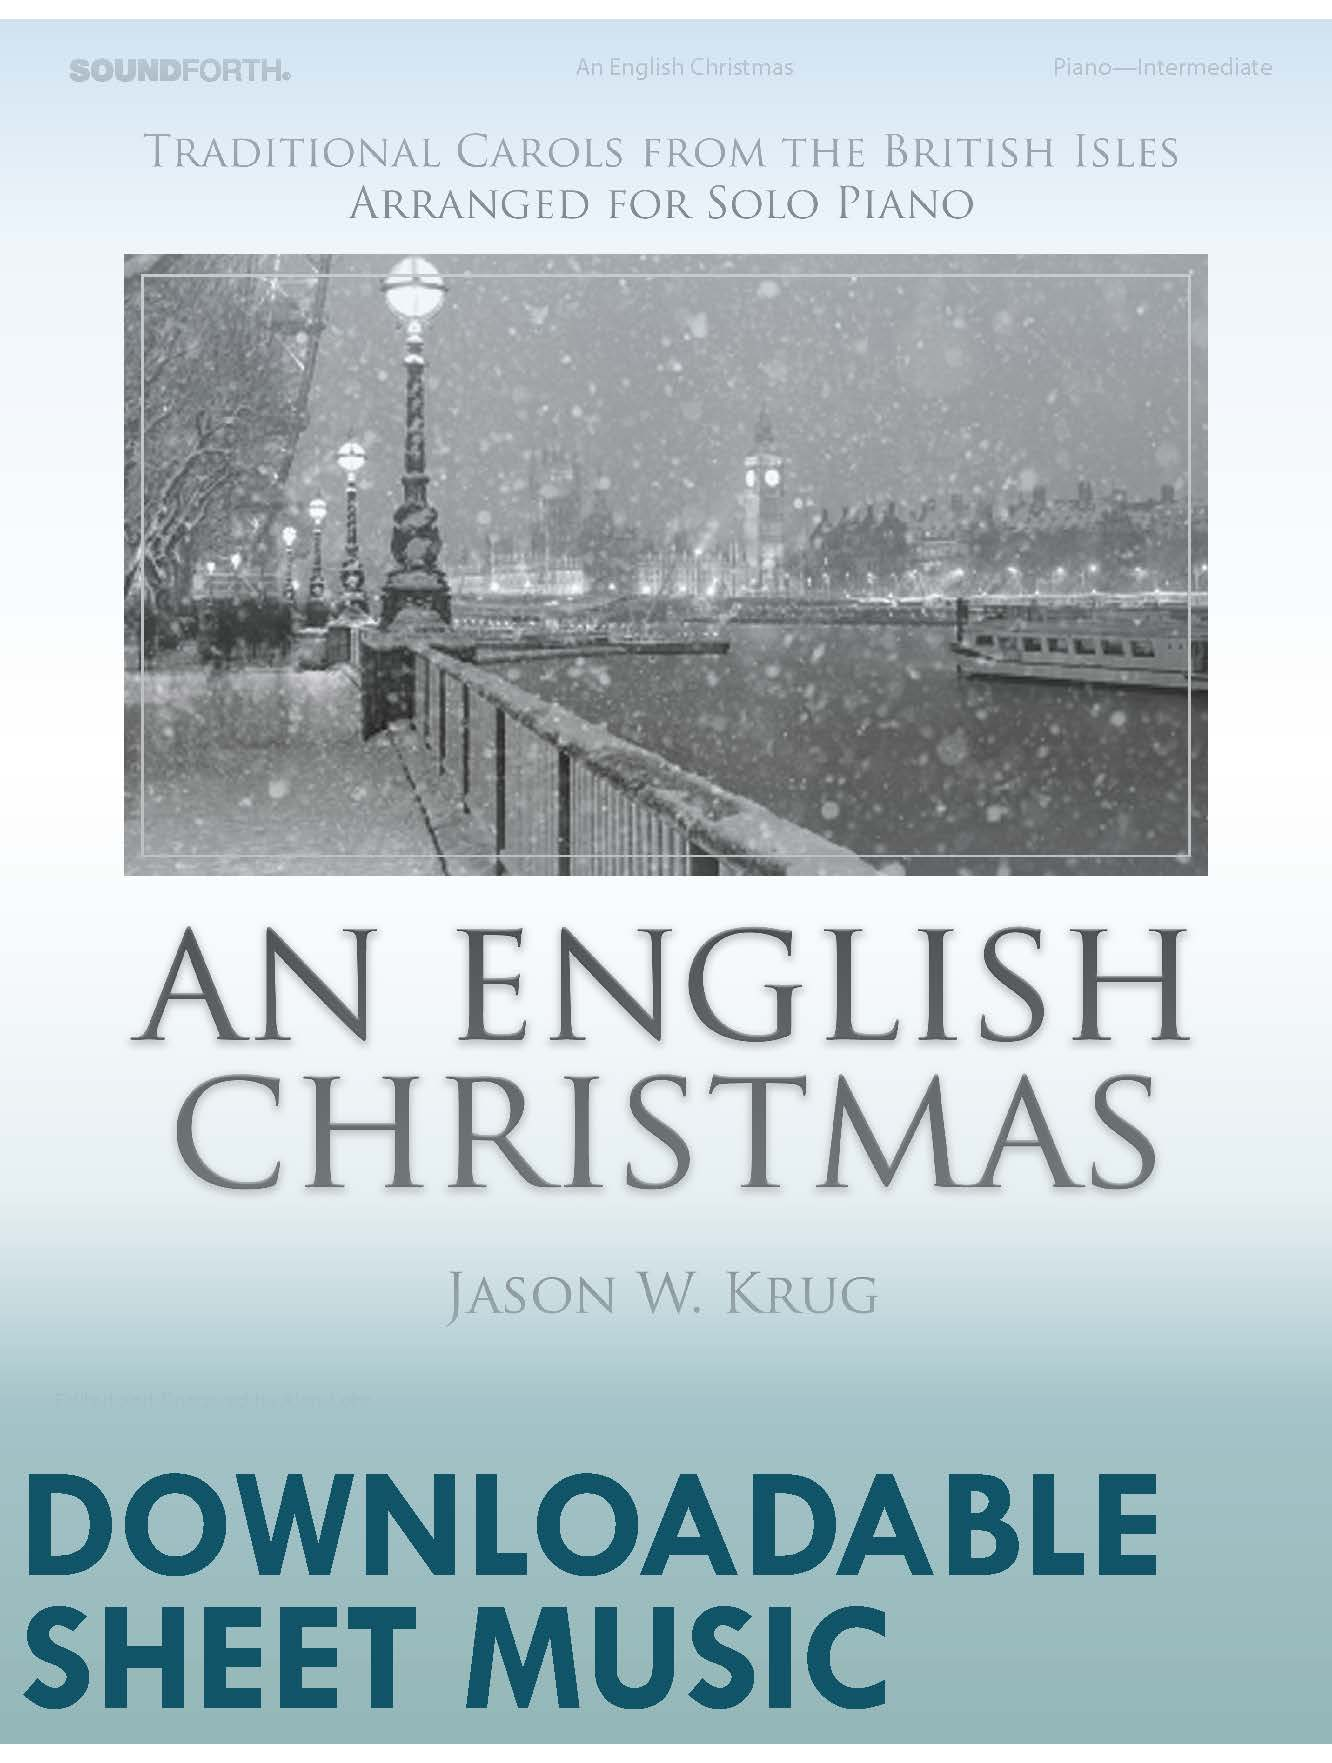 An English Christmas - Digital Download